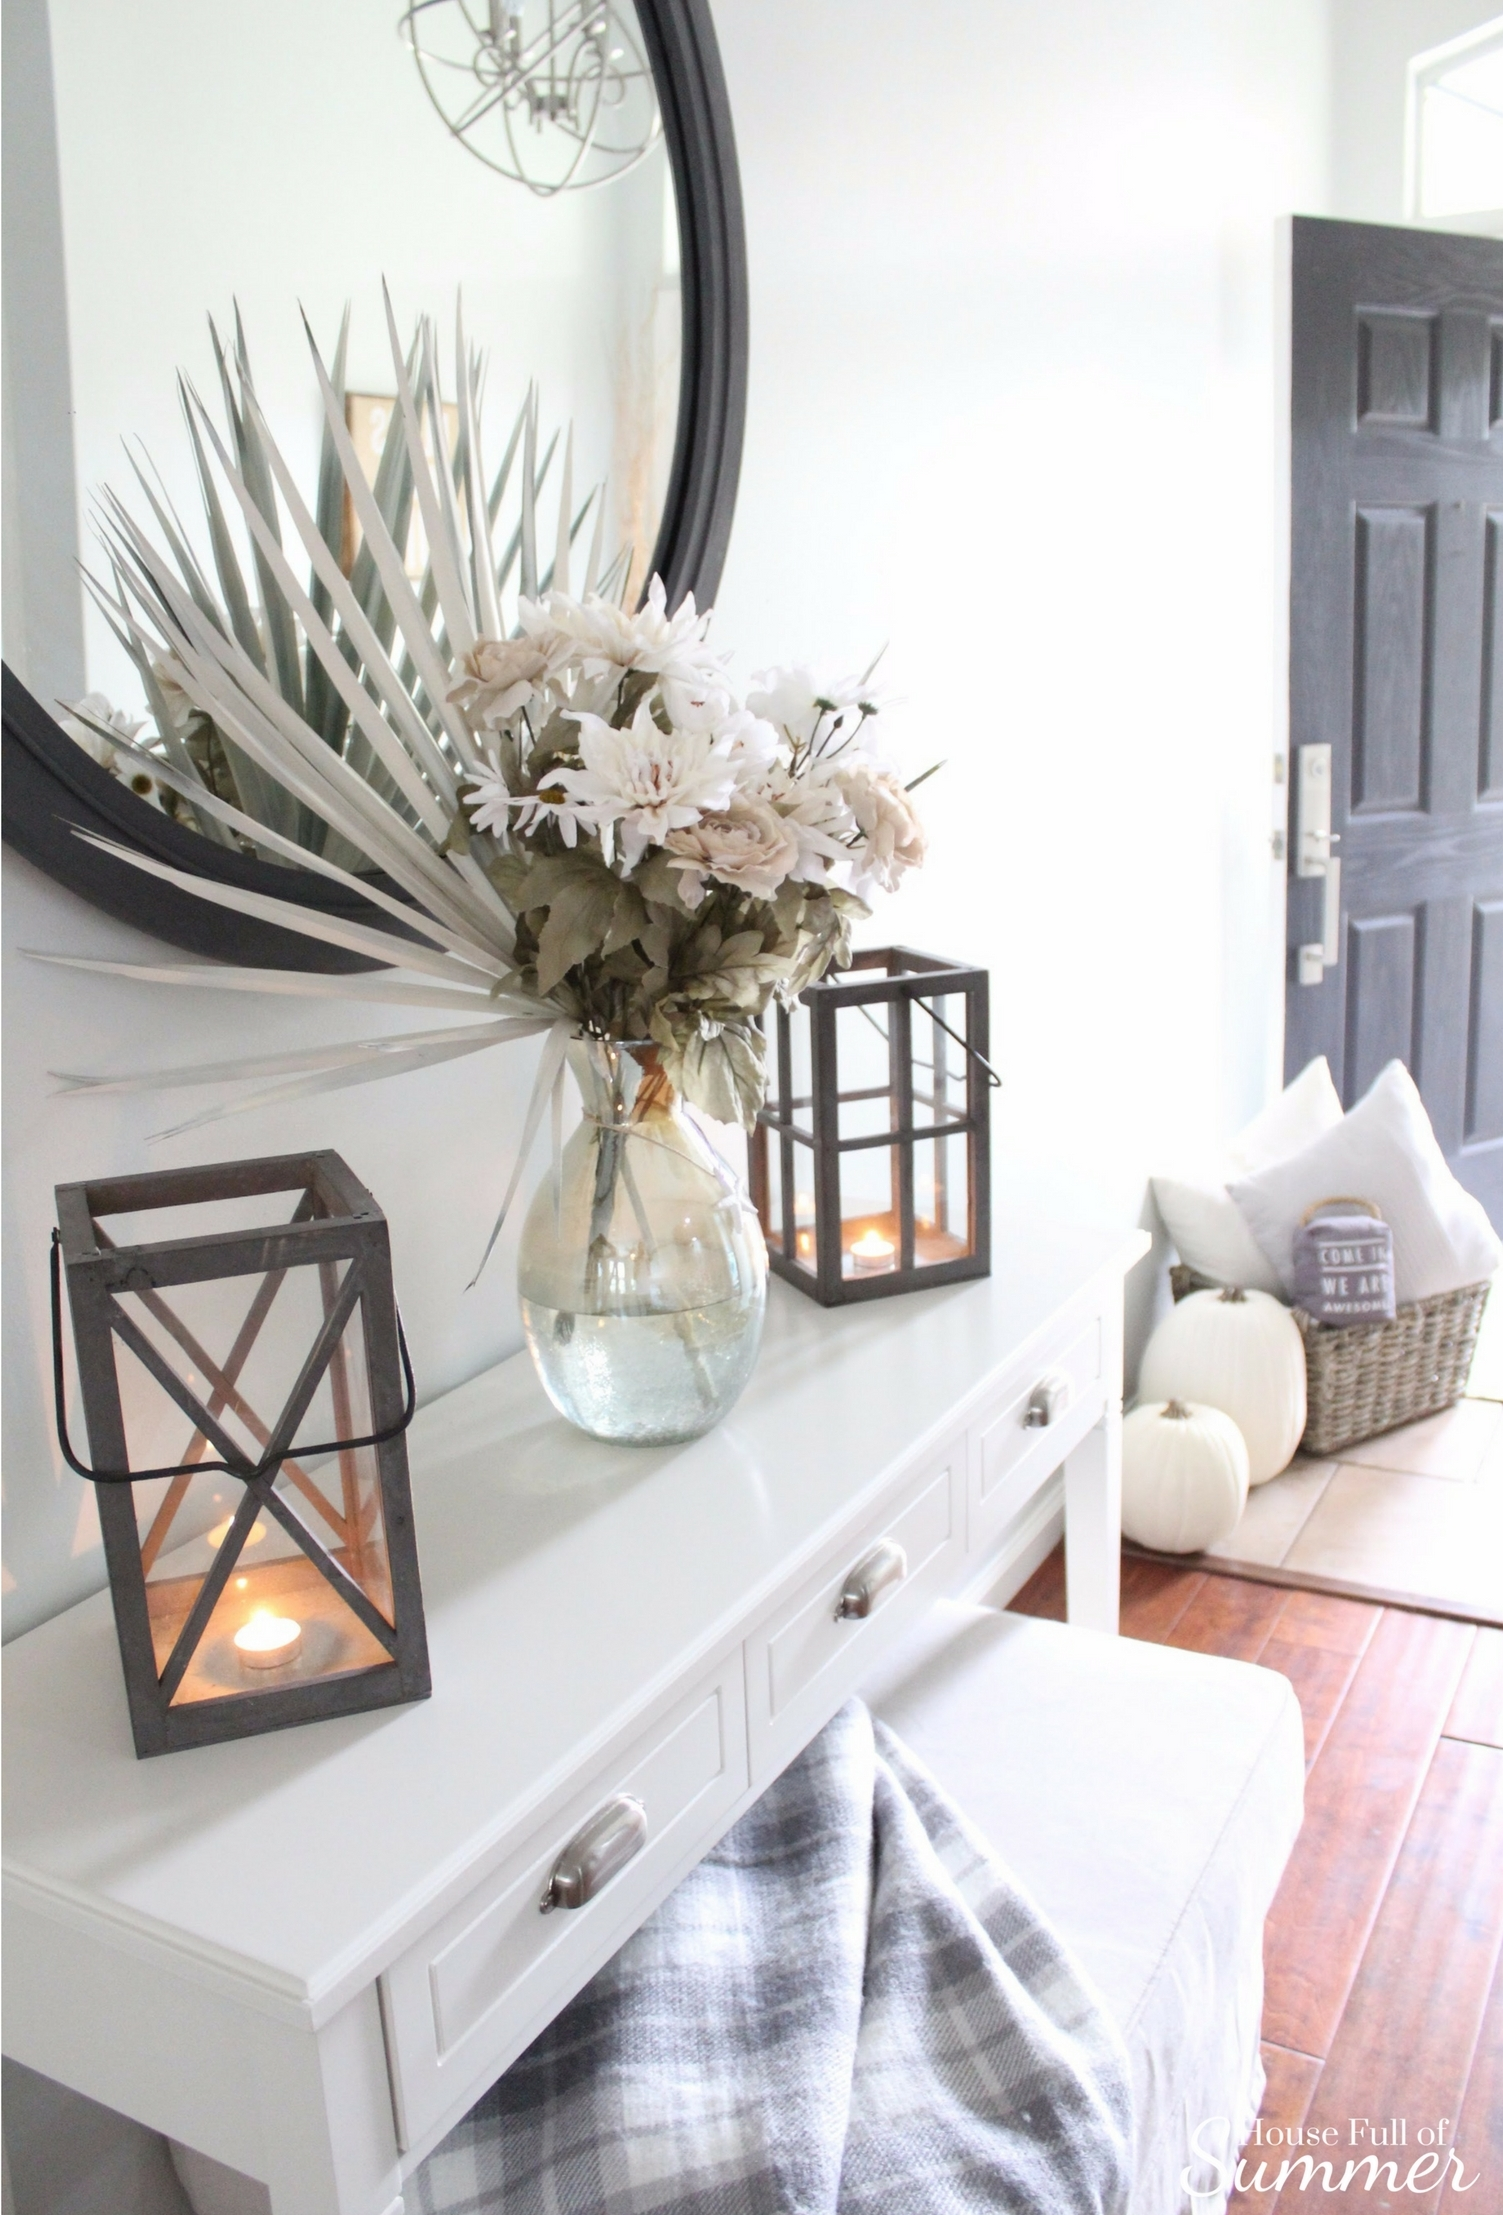 House Full of Summer: Fall Home Tour Blog Hop - Cozy, Coastal, Chic Foyer fall decorating ideas. Neutral interior, white pumpkins, front door decor, white console table, plaid throw, faux fall florals, entryway ideas, wood floors, orb chandelier, round mirror, lanterns, coastal fall, tropical fall, palm fronds, diy ideas